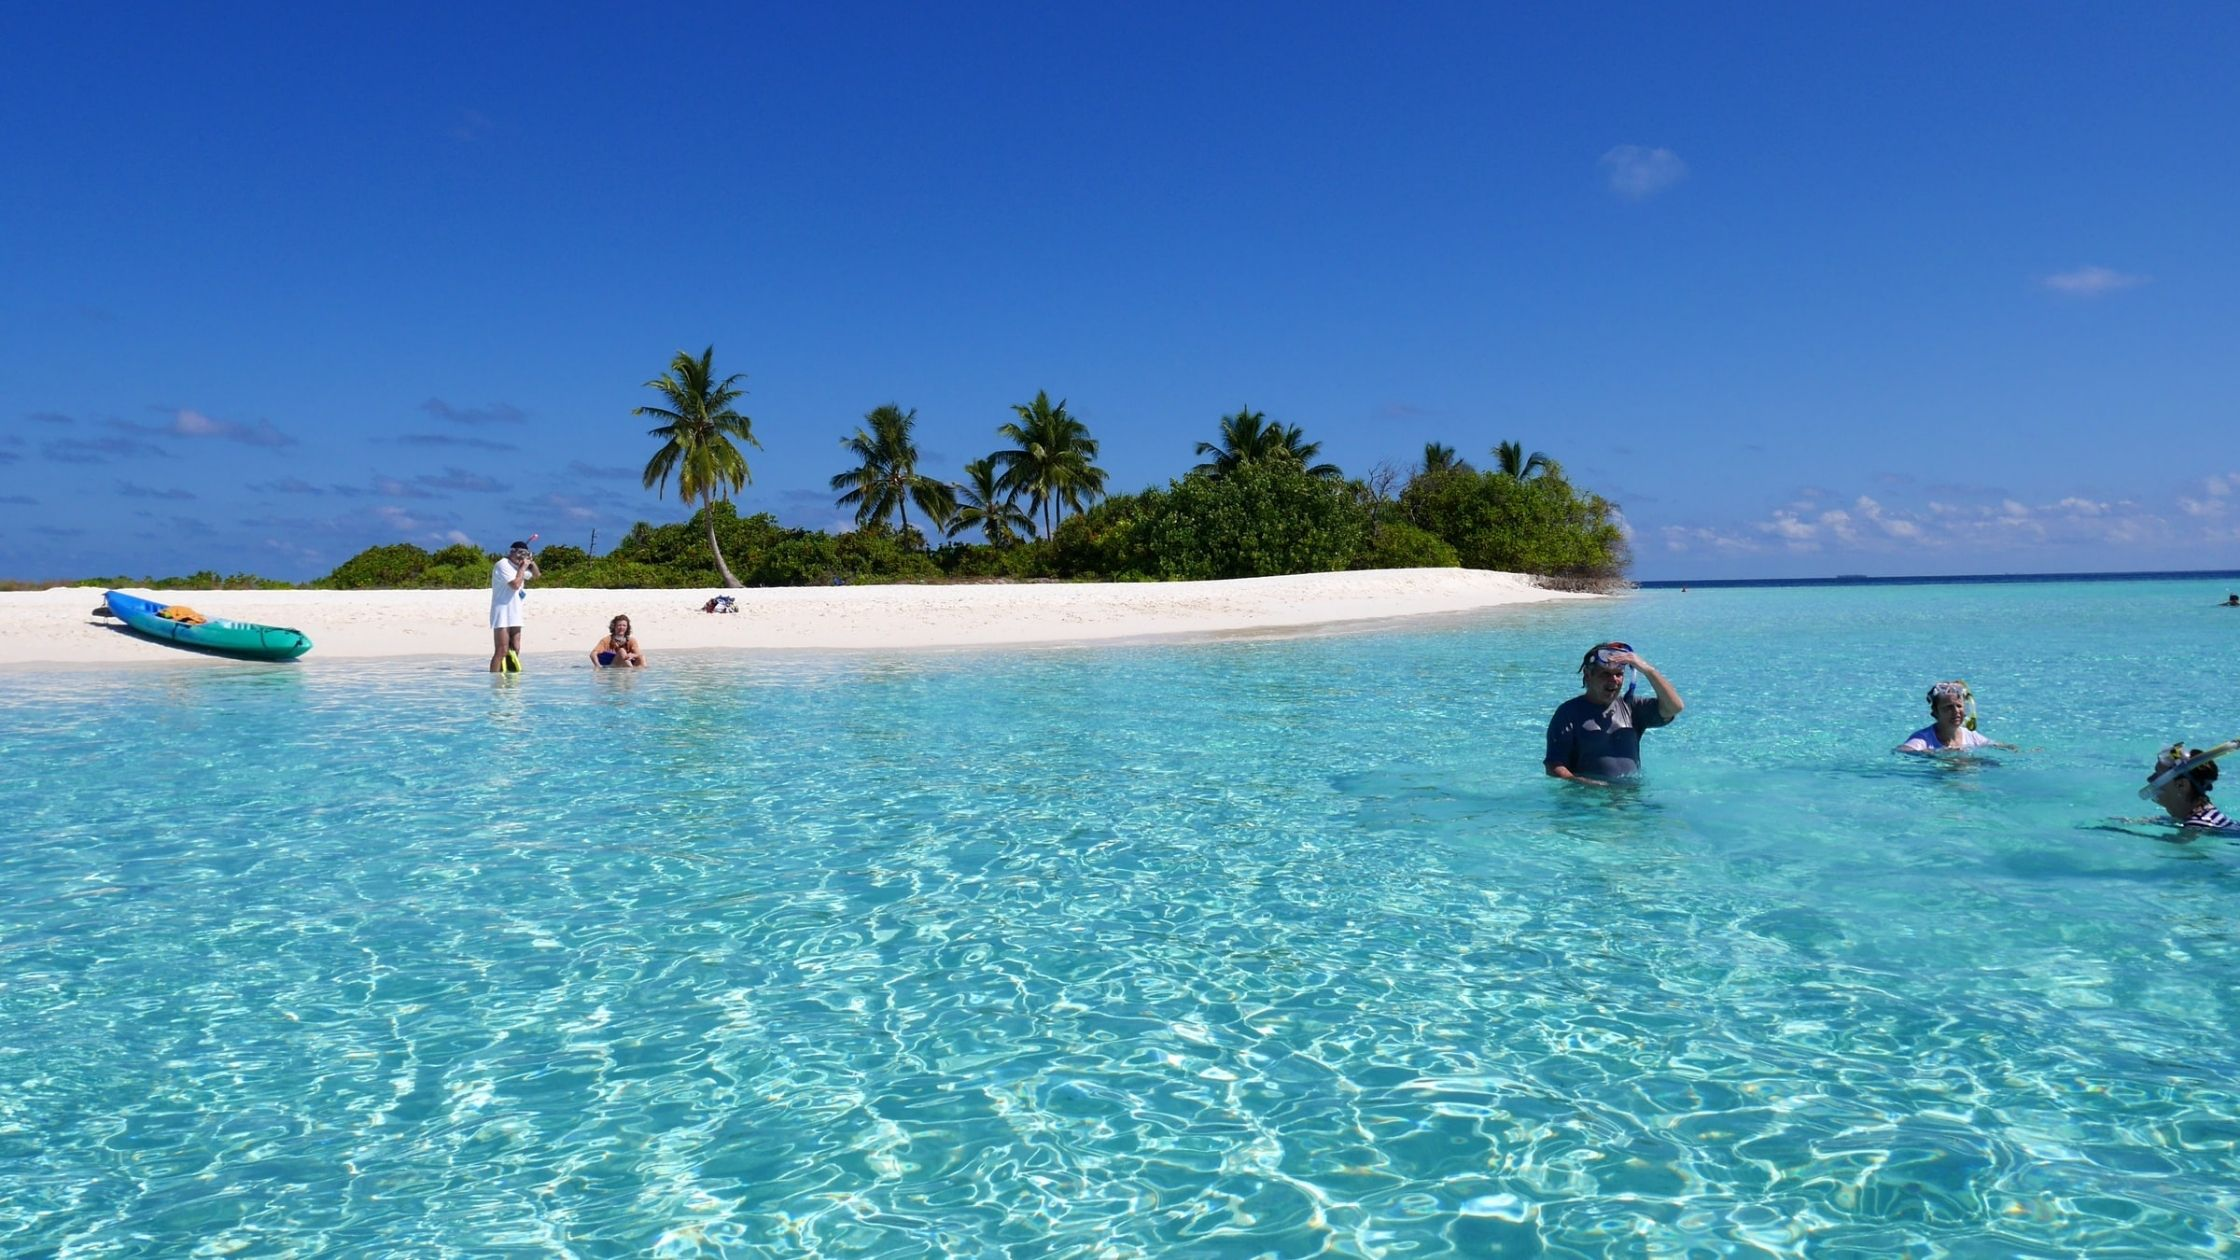 What to do in Maldives with Family - Family Activities and Things to do